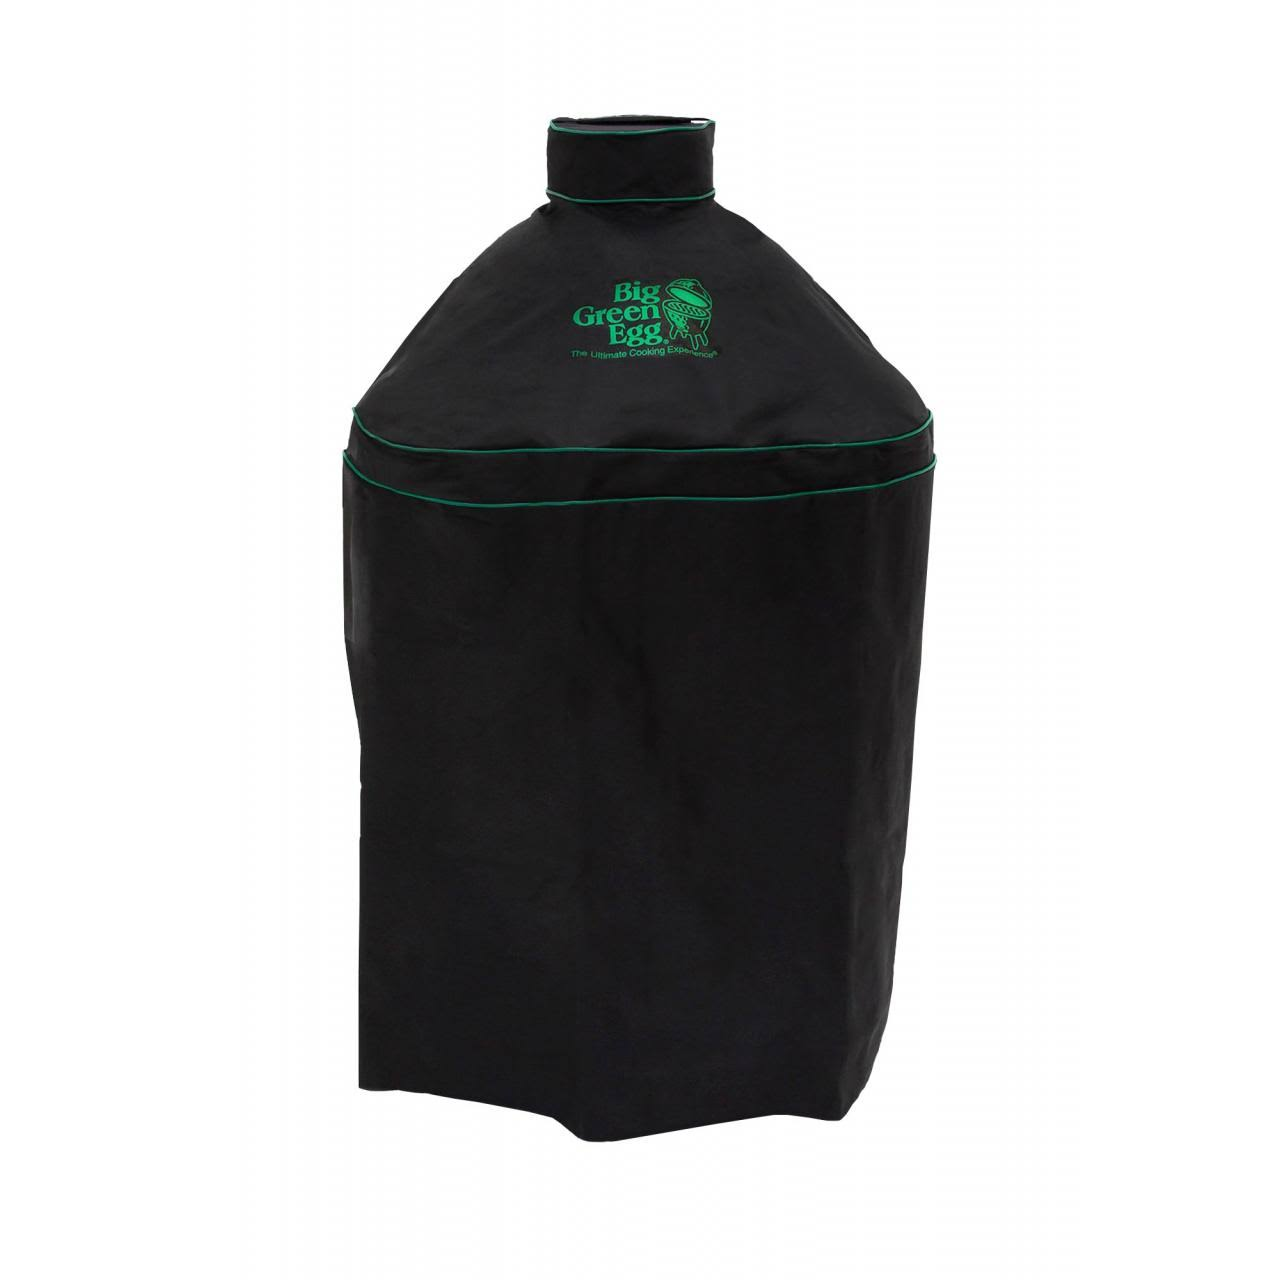 Big Green Egg Extra Large Ventilated Egg Cover Black